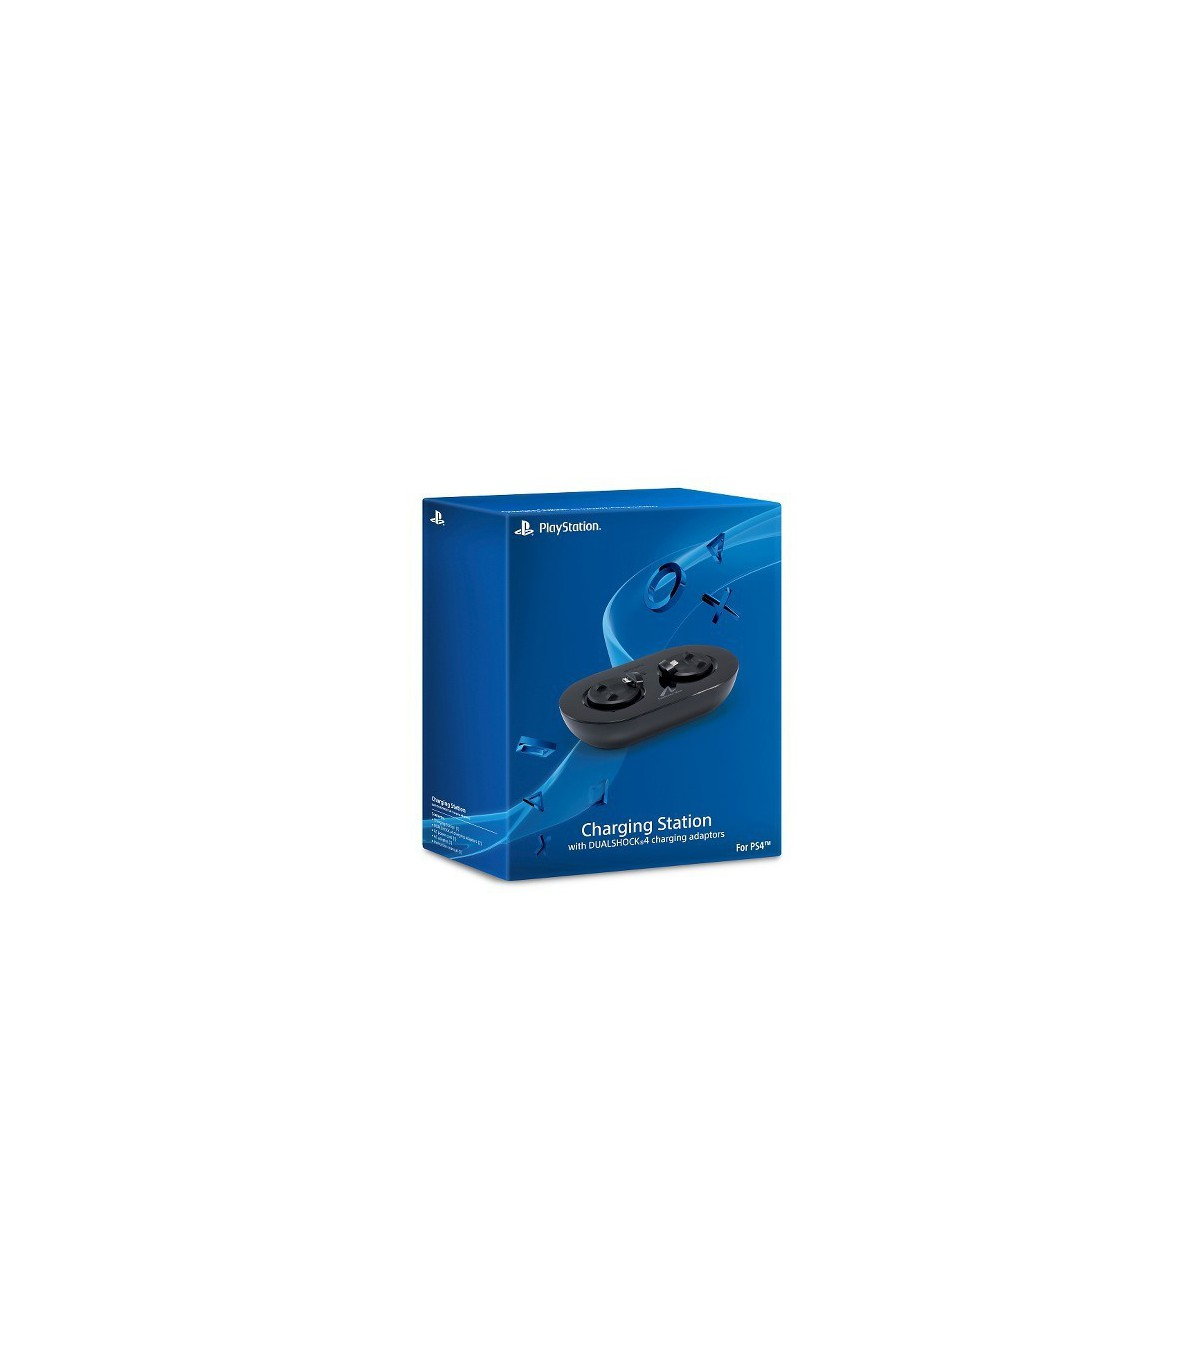 Sony Charging Station with DualShock 4 Adapters